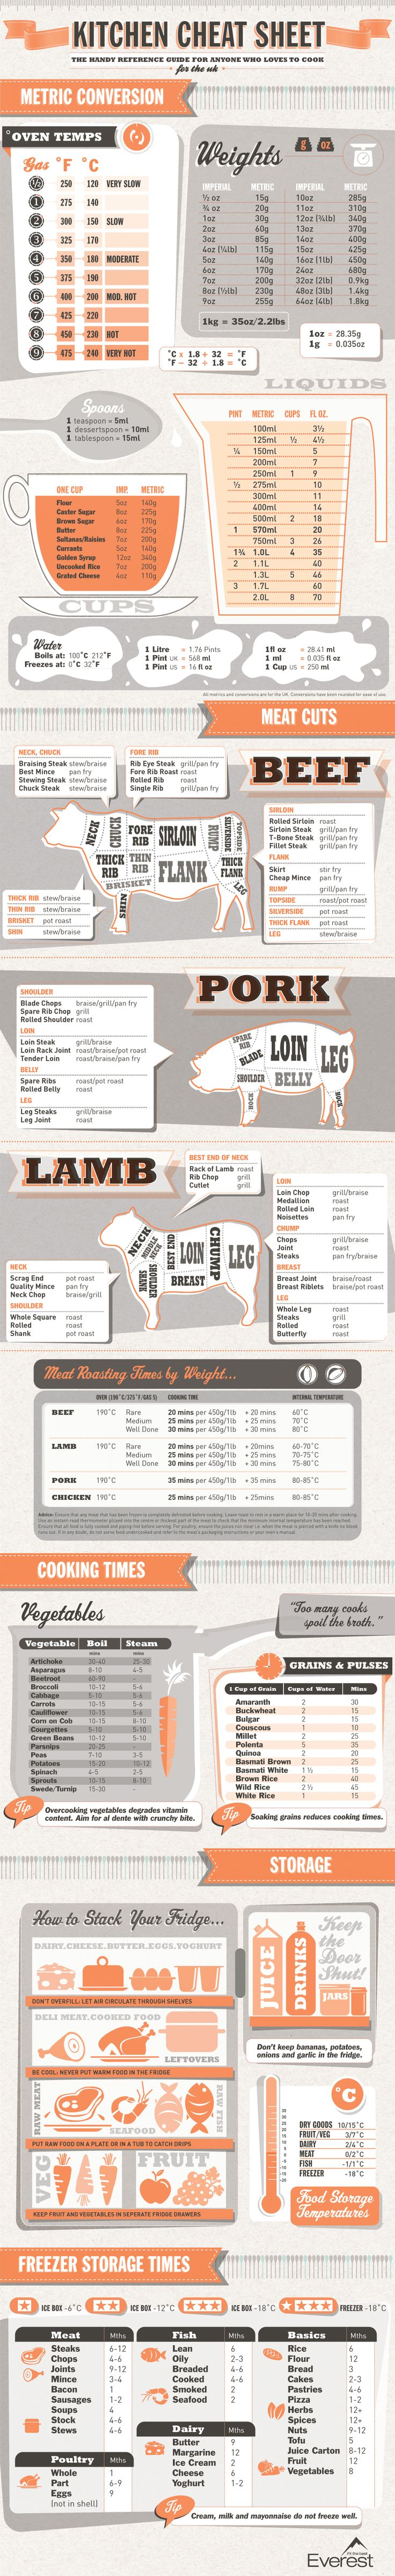 Kitchen cheat sheet...very helpful